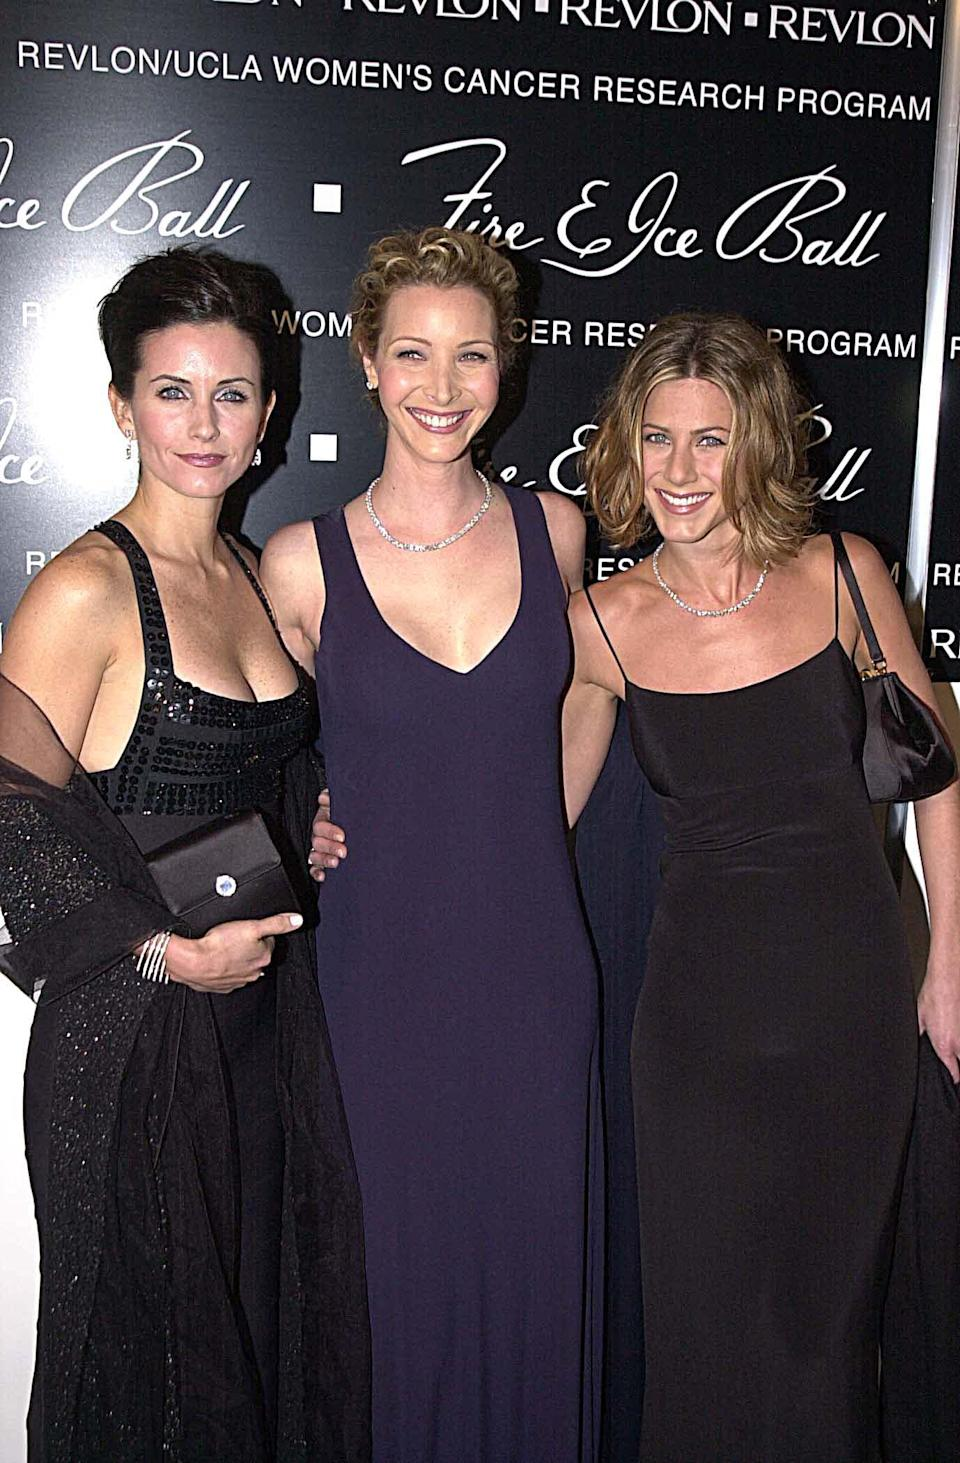 <p>Block colour dresses all round for the 'Friends' ladies at a ball in 2000.<em> [Photo: Getty]</em> </p>